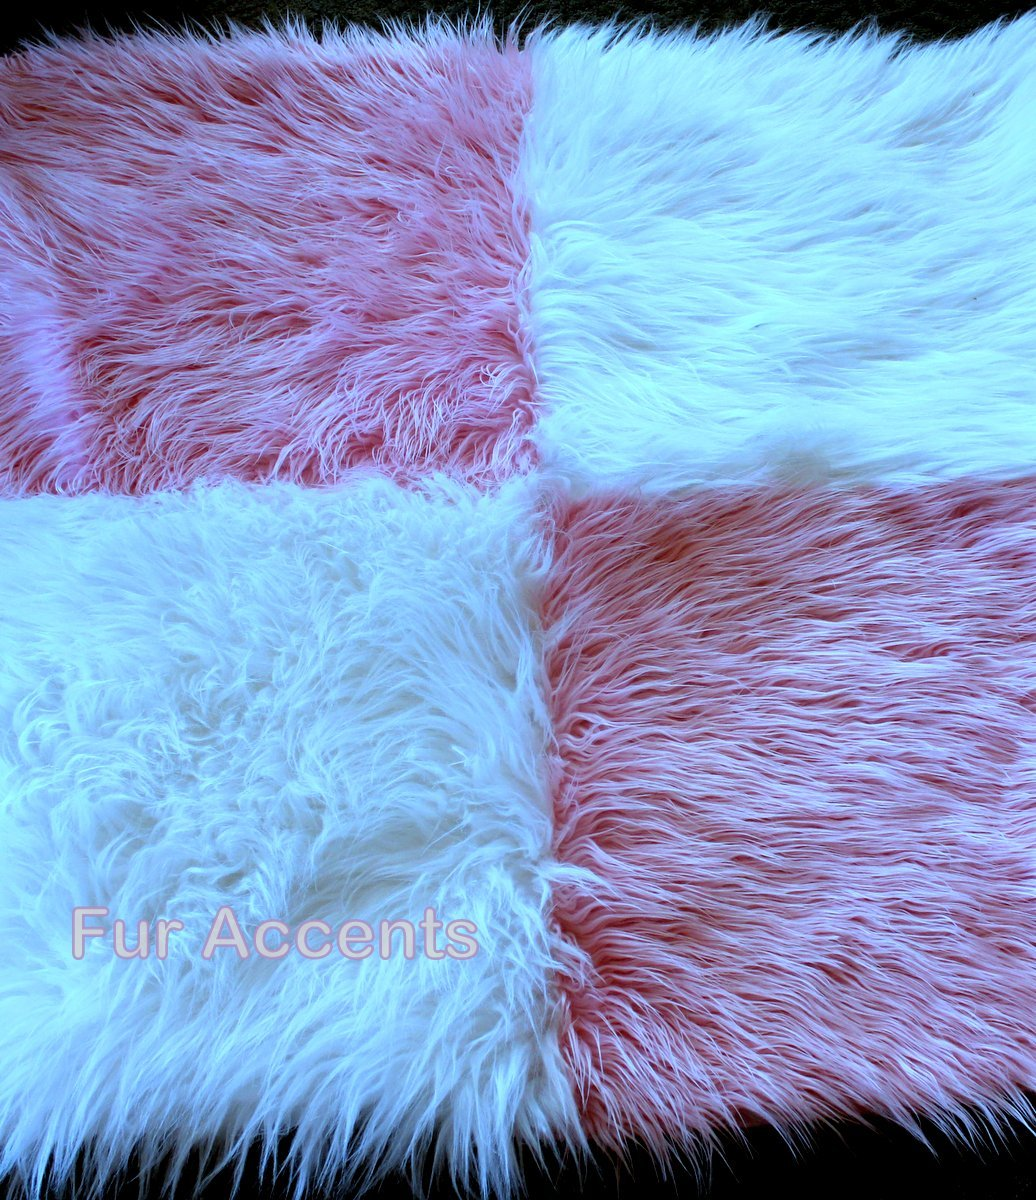 Fur Accents Mongolian Sheepskin Accent Rug / Mongolian Long Hair Faux Fur / Cotton Candy Pink and White Patchwork Quilt Squares /40'' X 60''